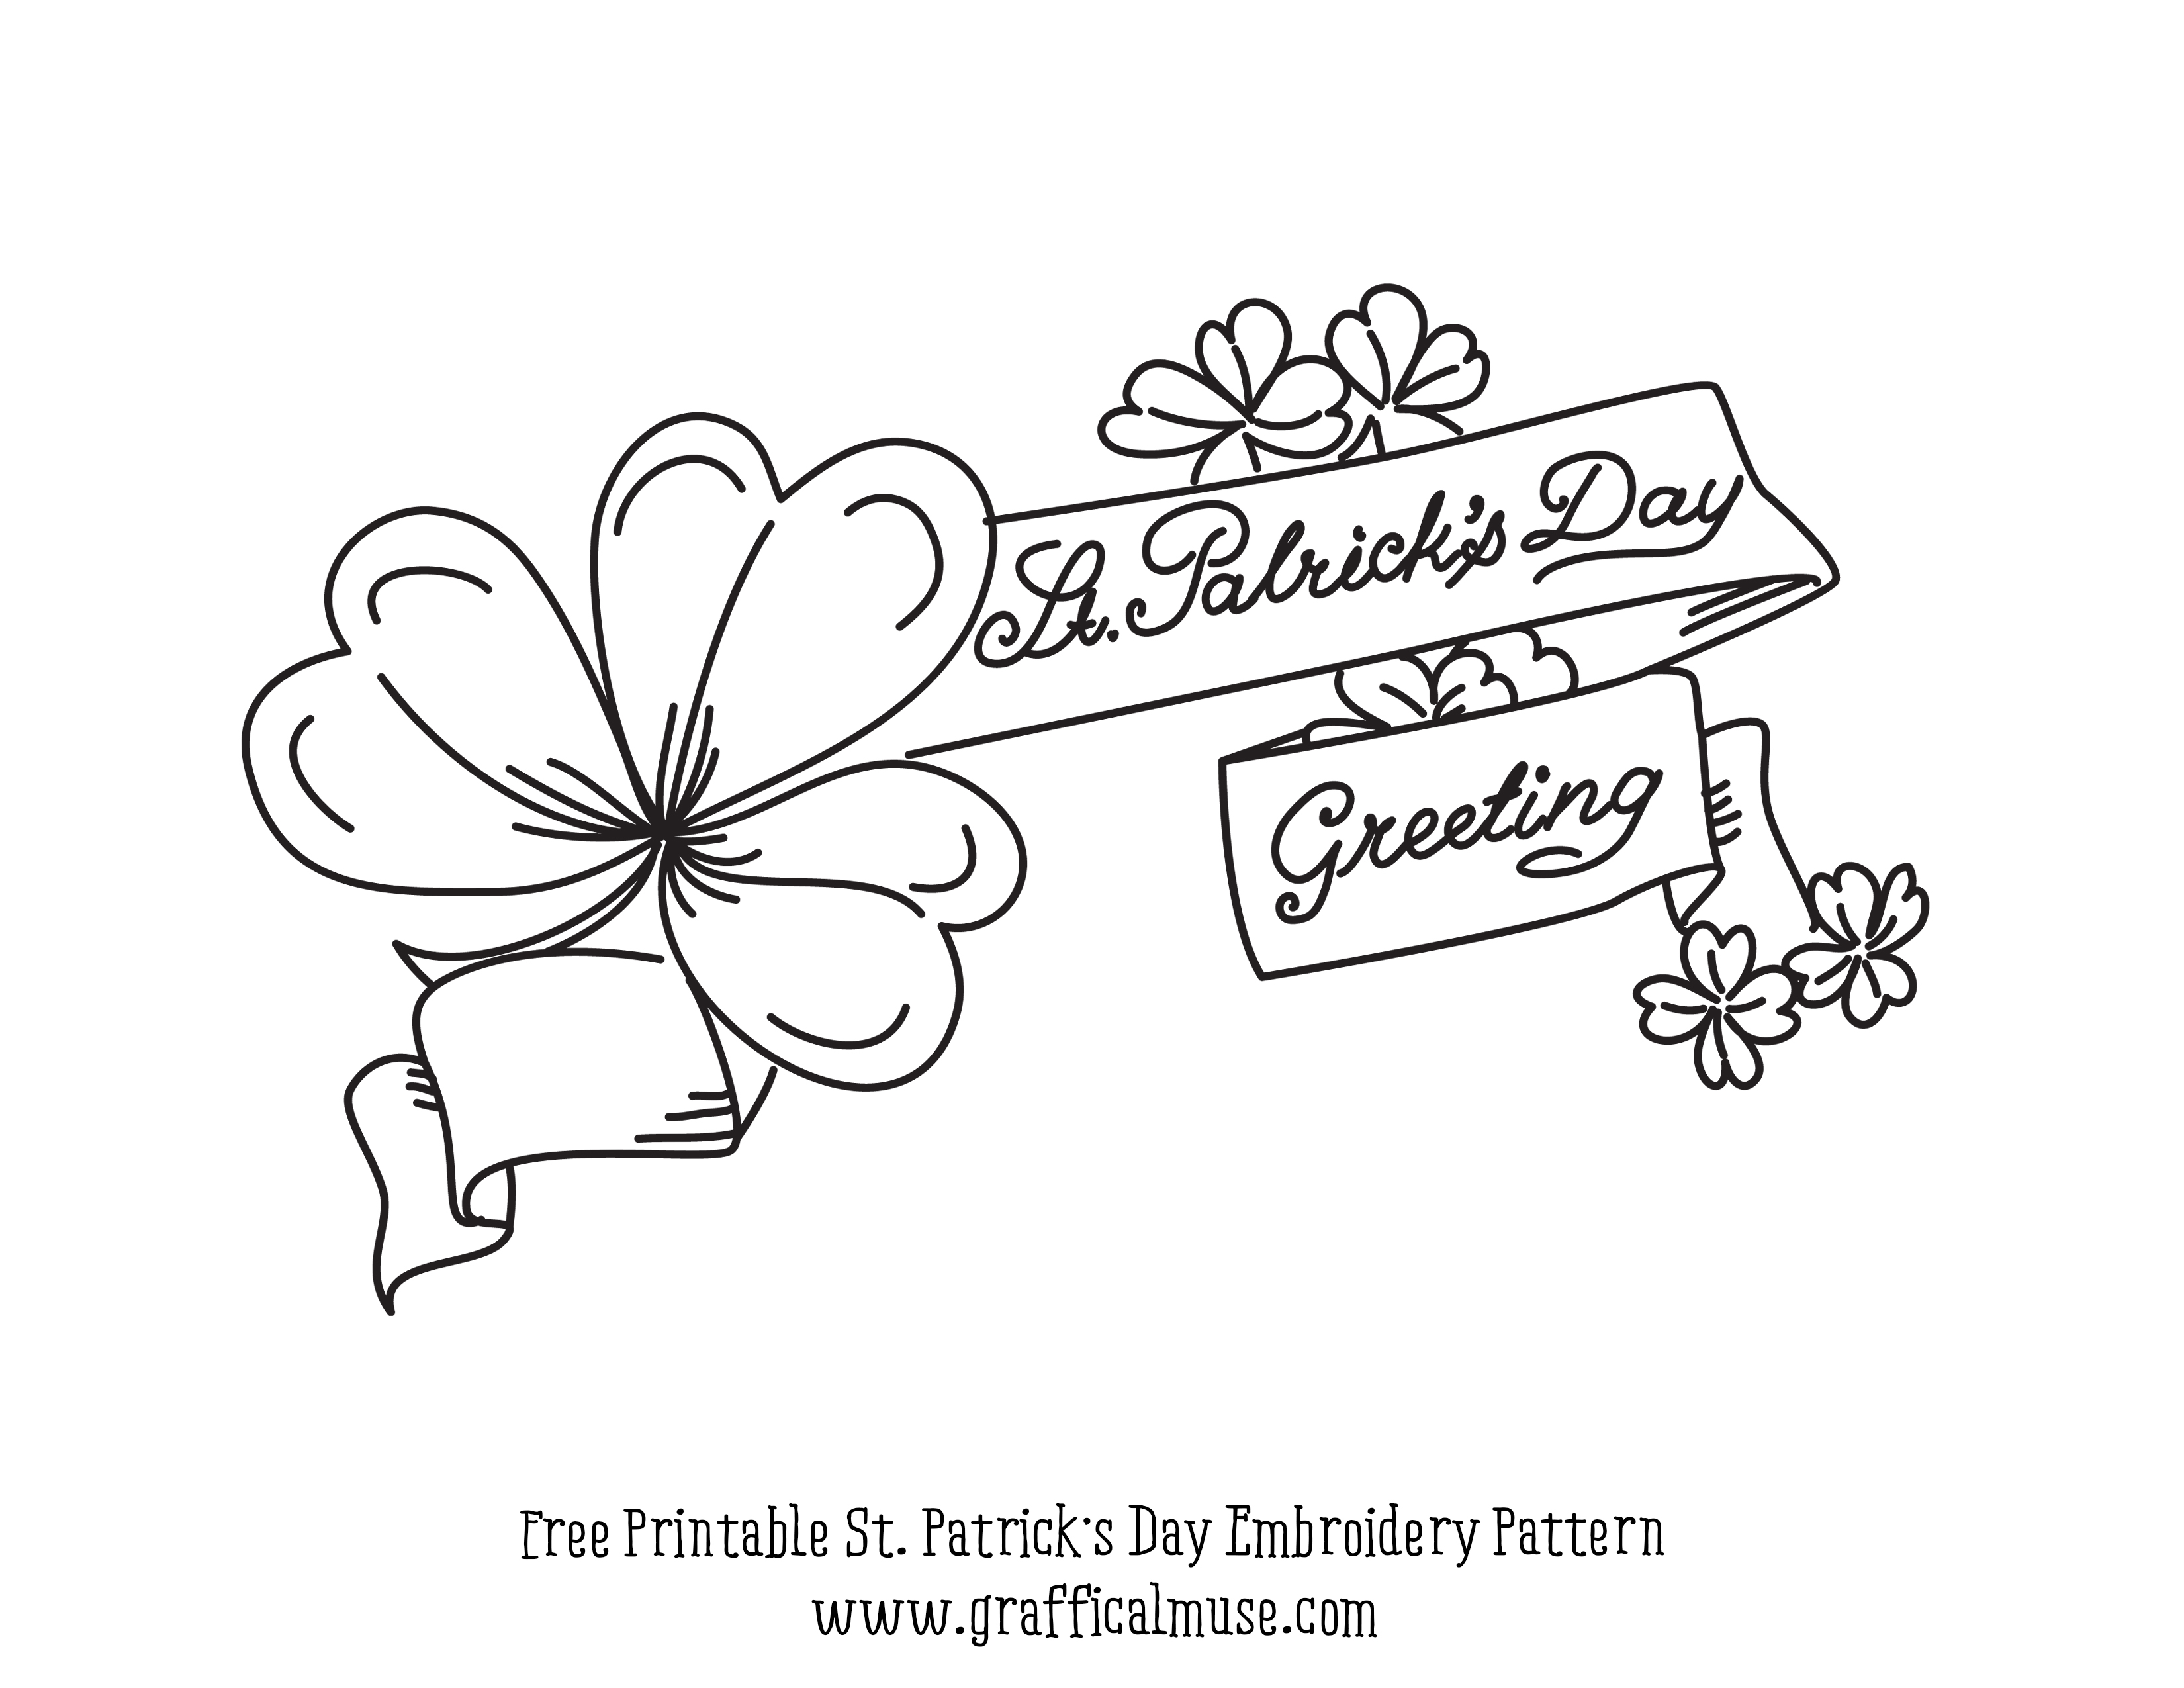 Free Printable Embroidery Pattern